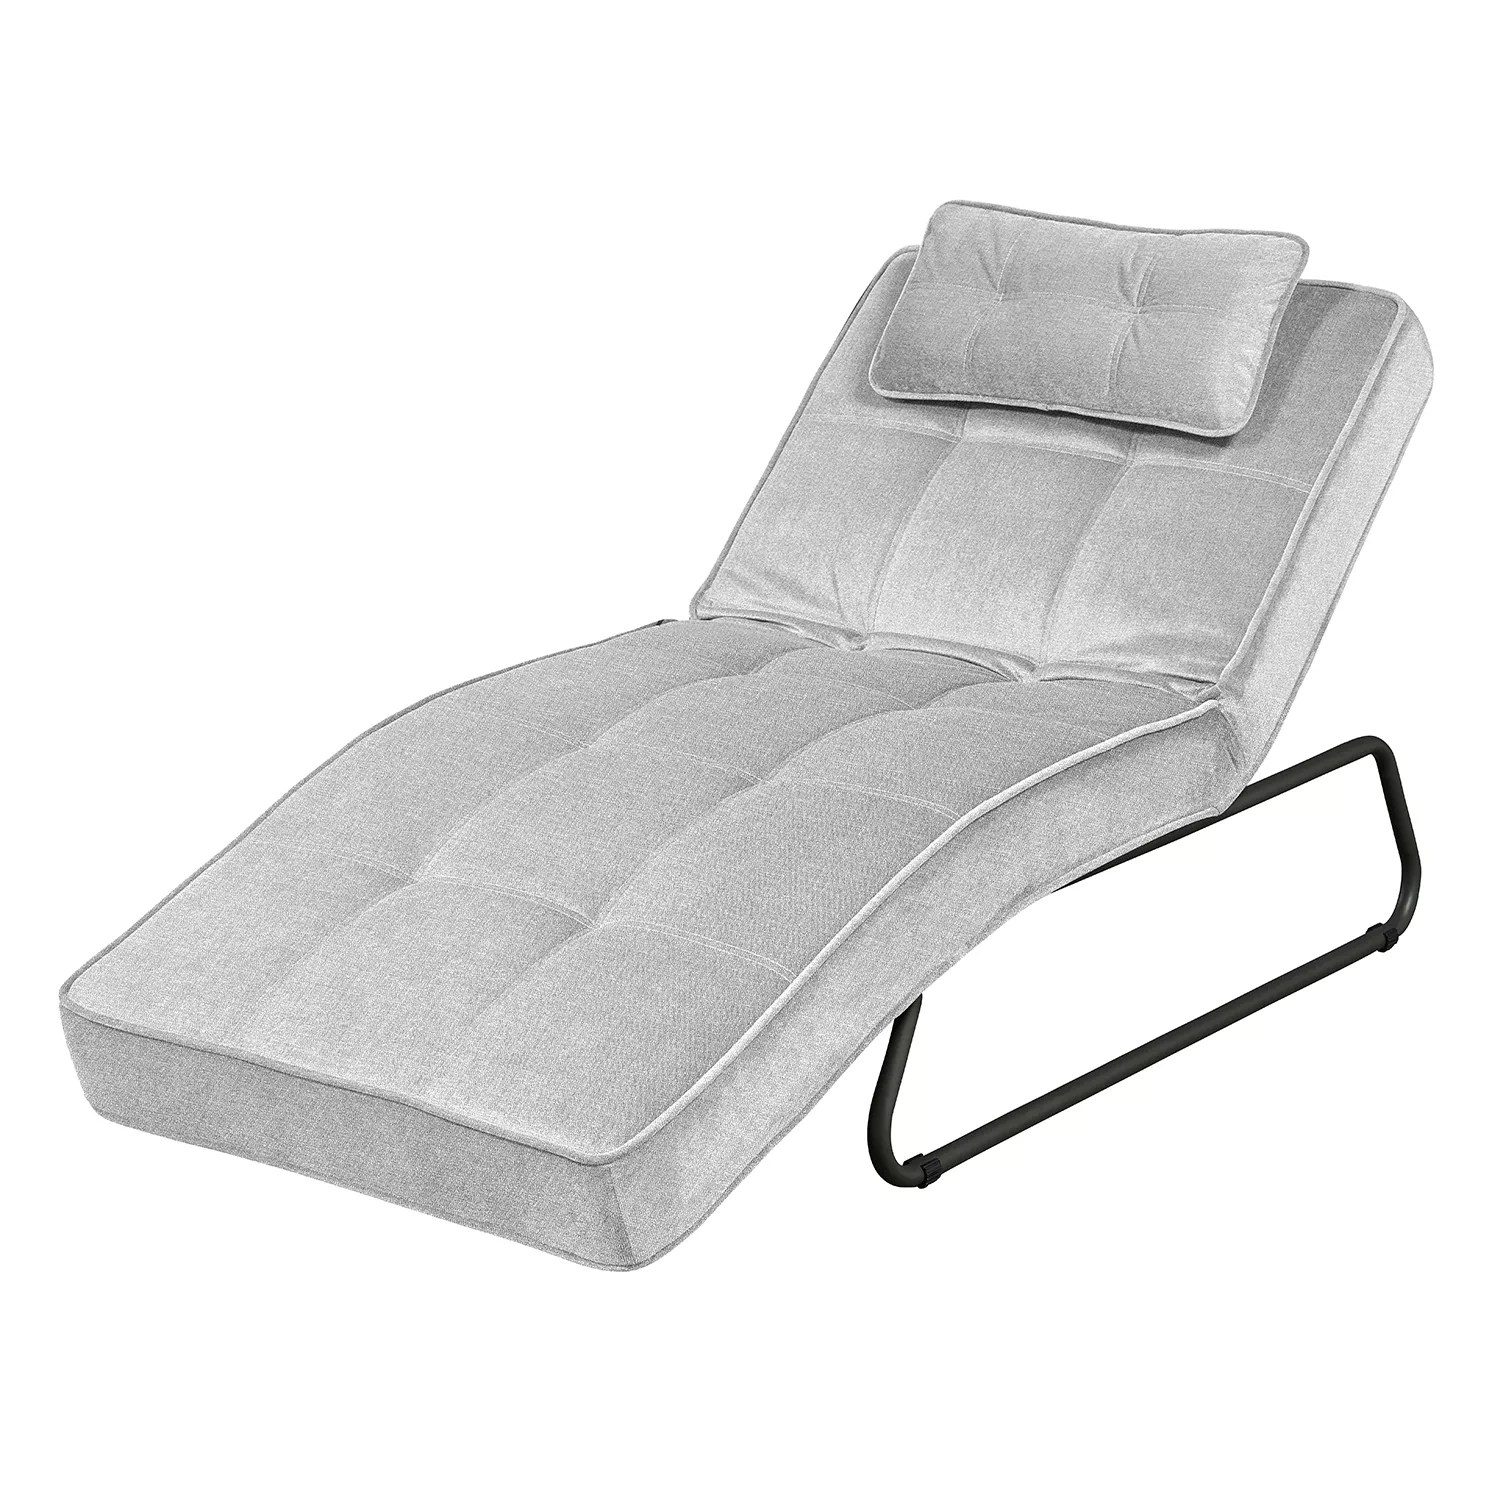 1000 Chaises Theo Convertible Chaise Lounge